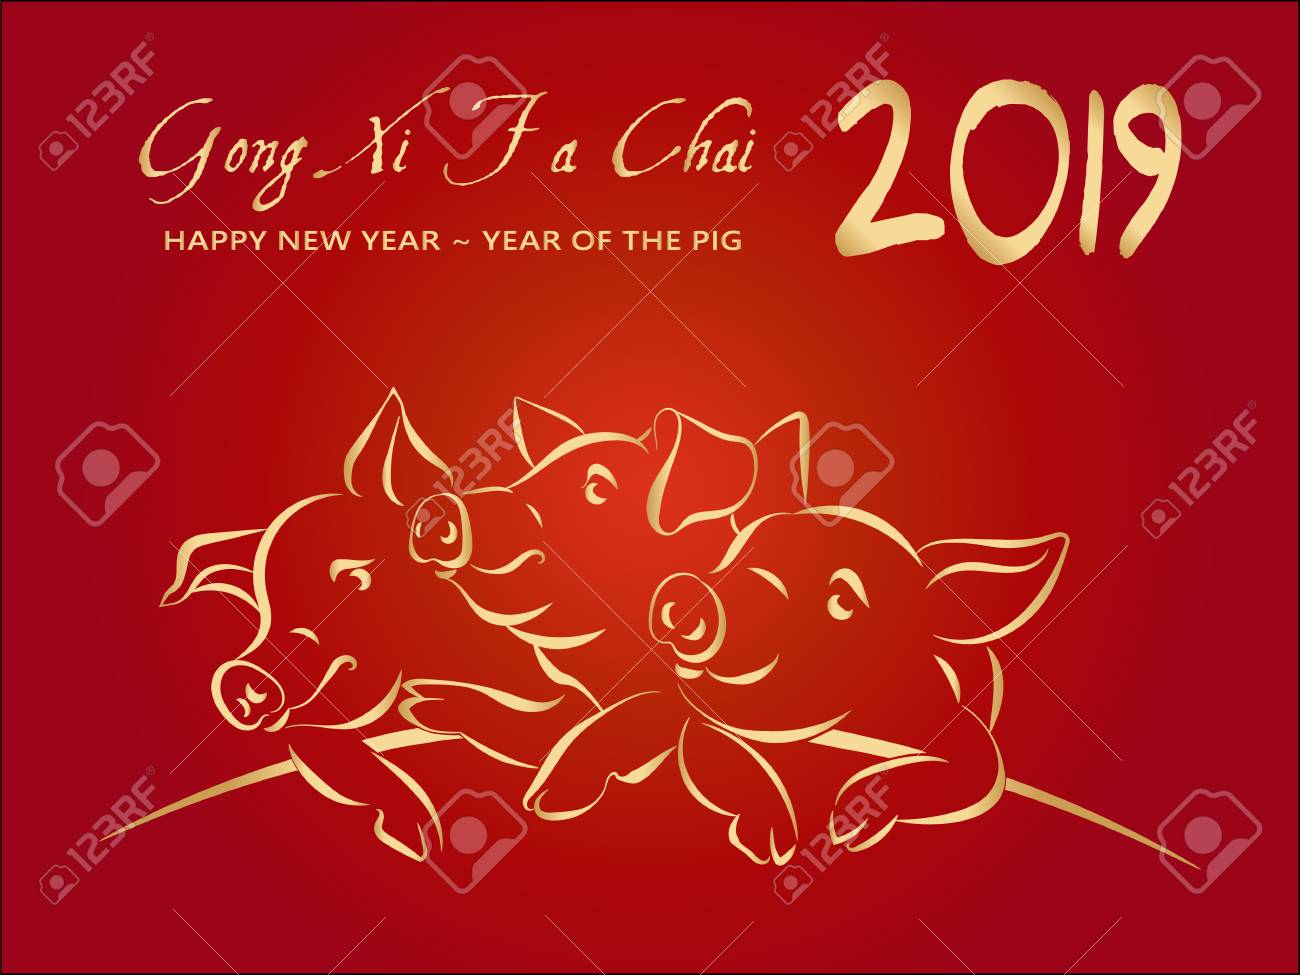 2019 Happy Chinese New Year Greeting Card With 3 Gold Pigs